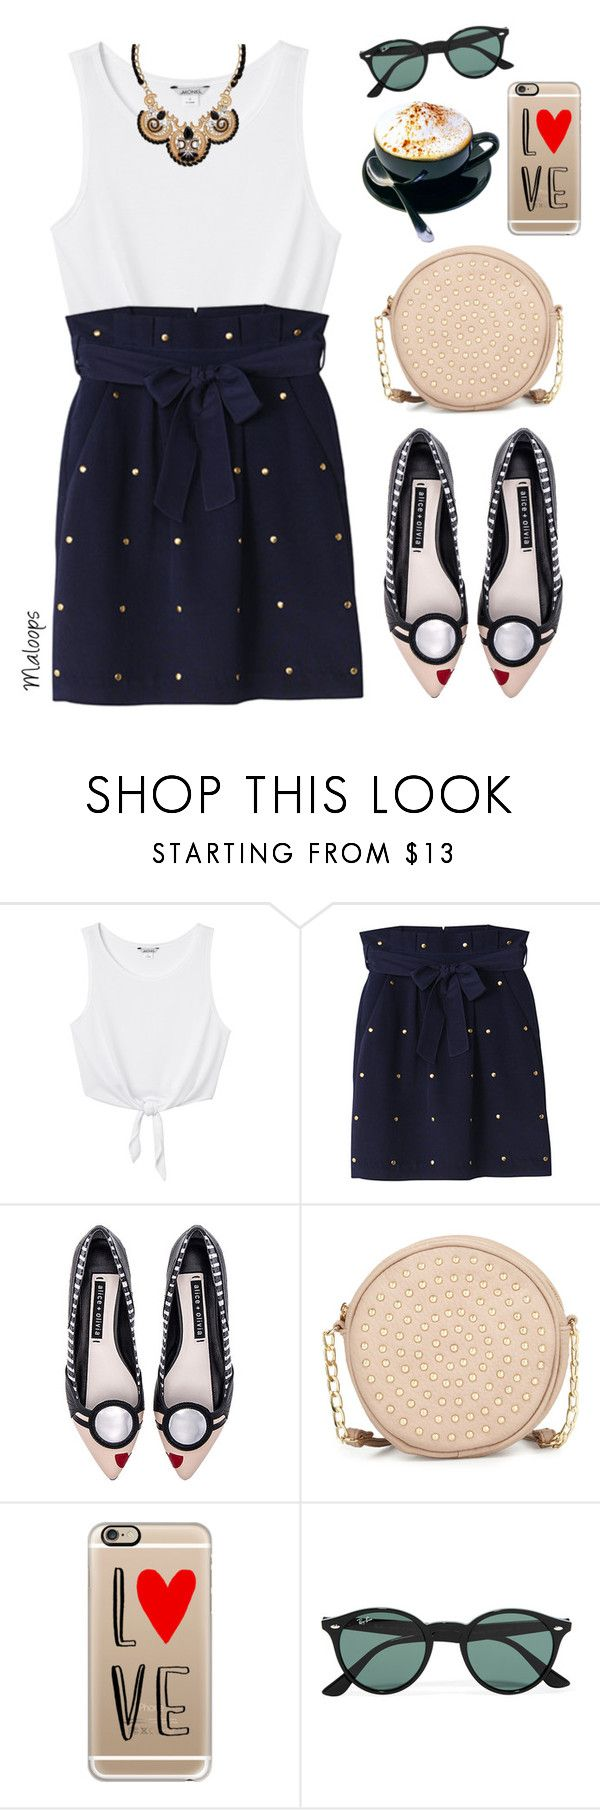 """""""~Every life unlived is a song unsung~"""" by maloops ❤ liked on Polyvore featuring Monki, Alice + Olivia, Neiman Marcus, Casetify, Ray-Ban, Palm Beach Jewelry, Summer, PolkaDots and CasualChic"""